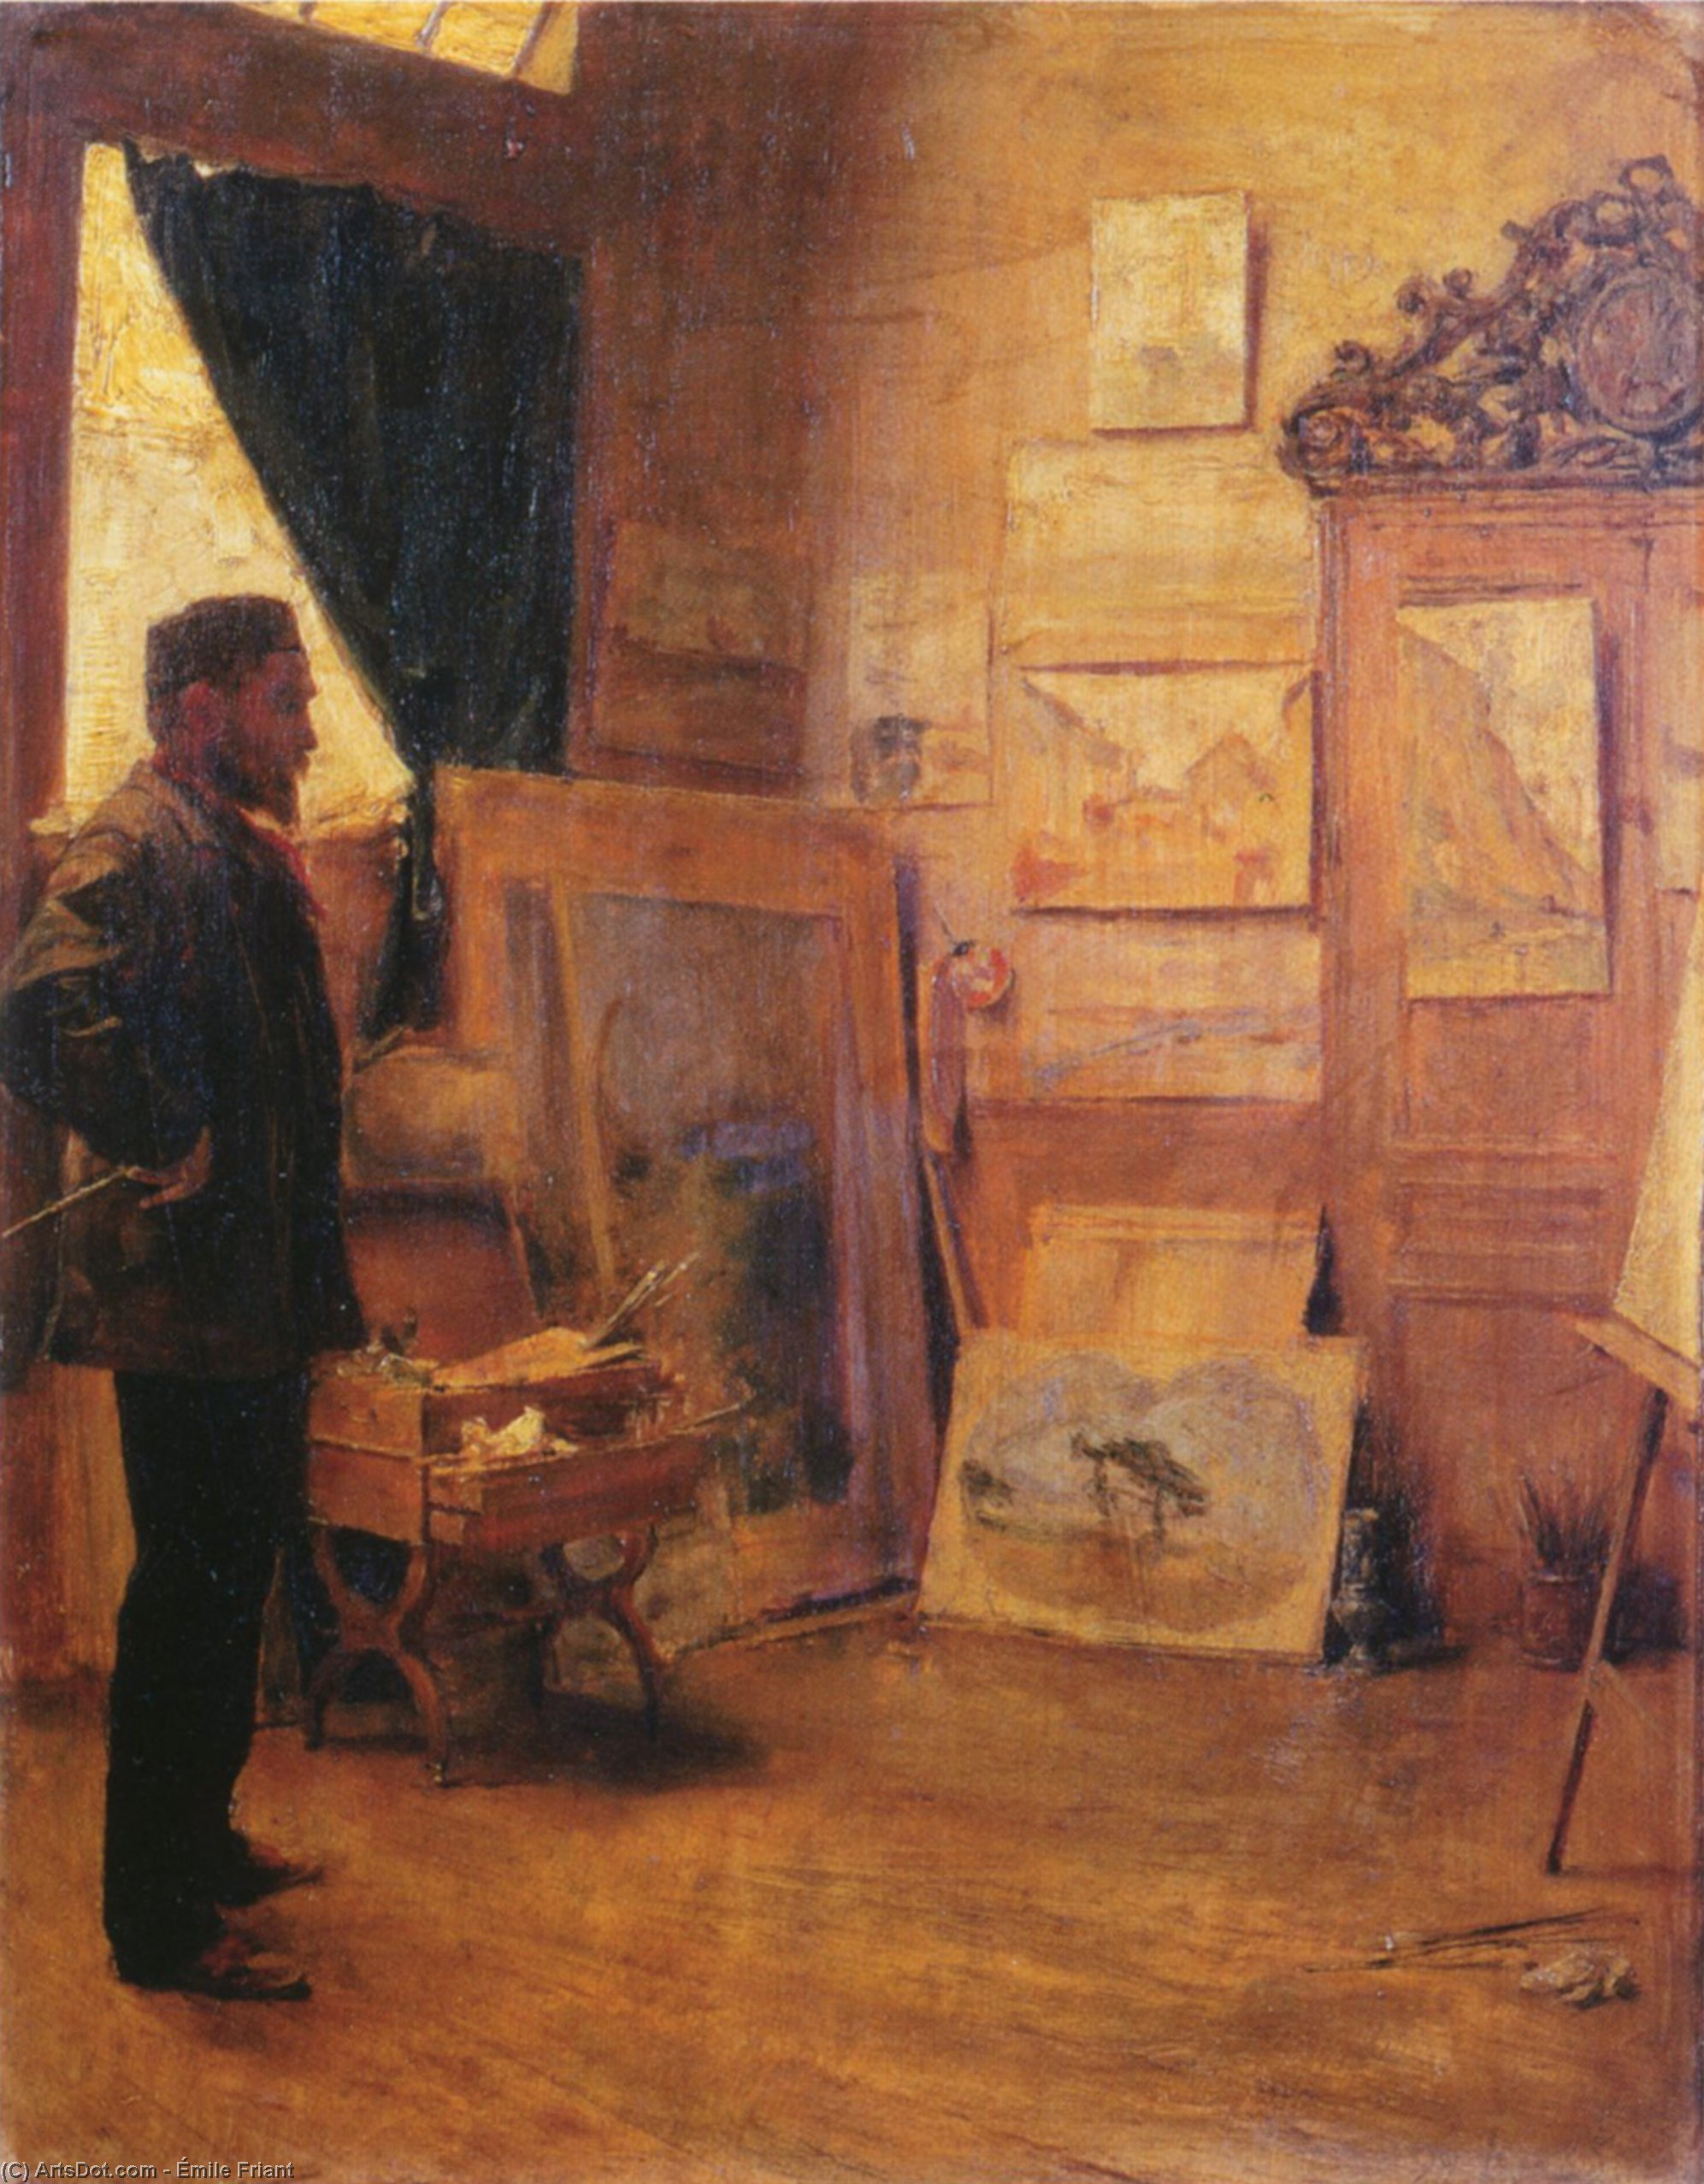 The Landscape Painter in his Studio, 1885 by Émile Friant (1863-1932, France)